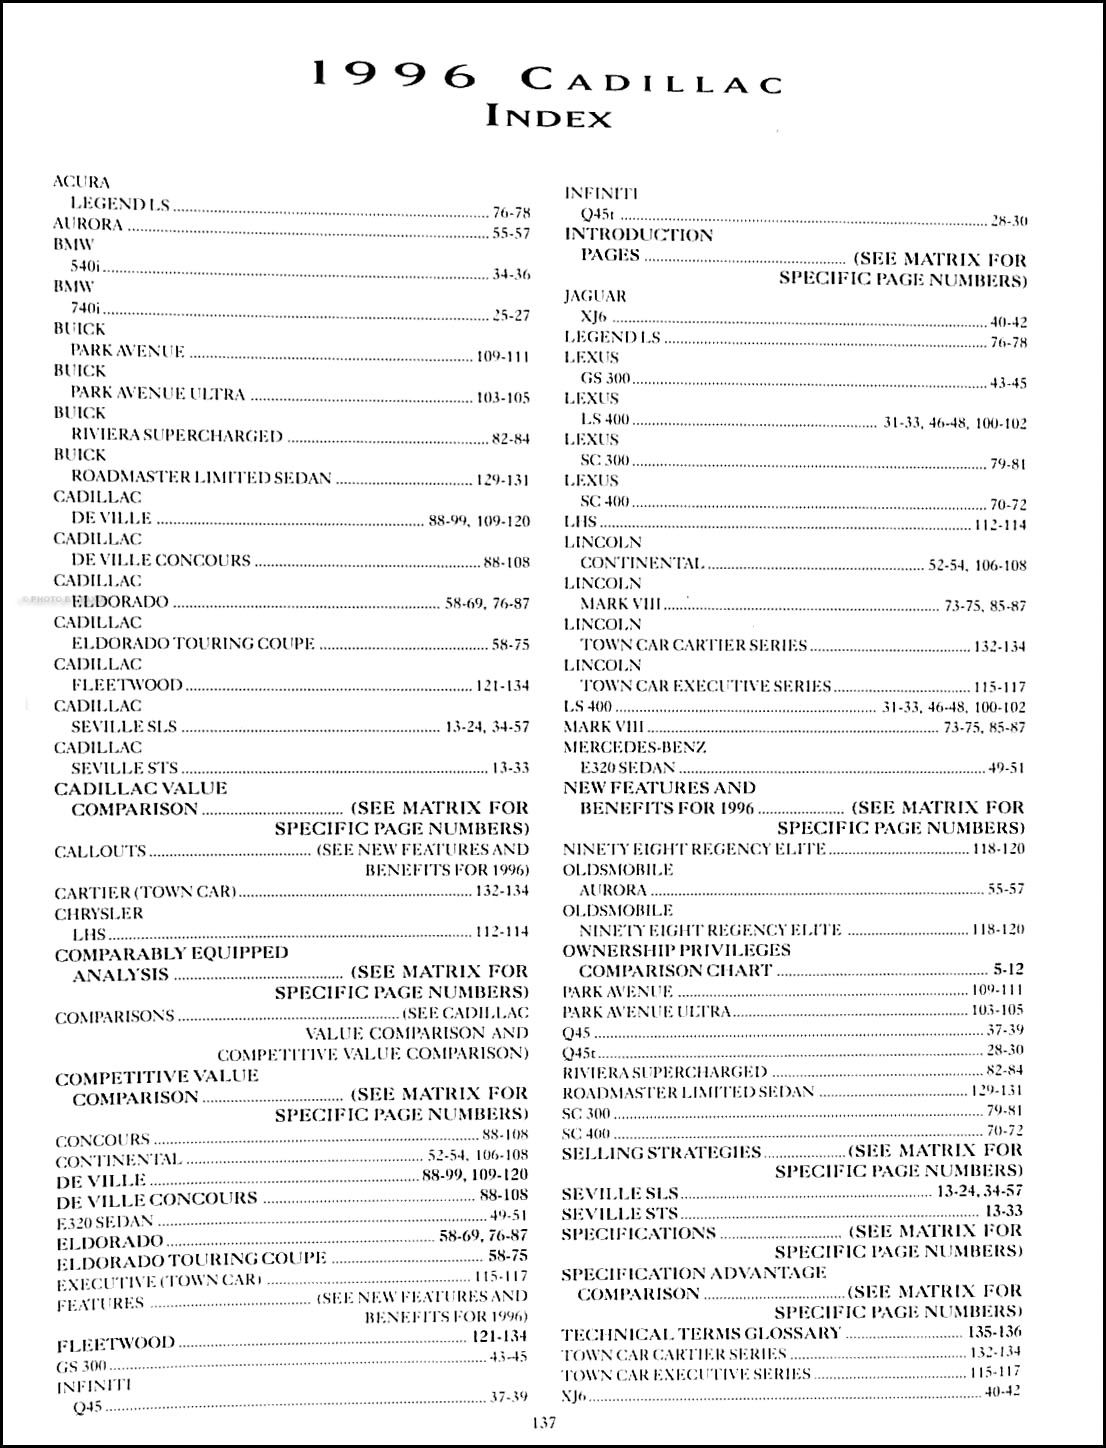 1996 cadillac competitive comparison guide original dealer album